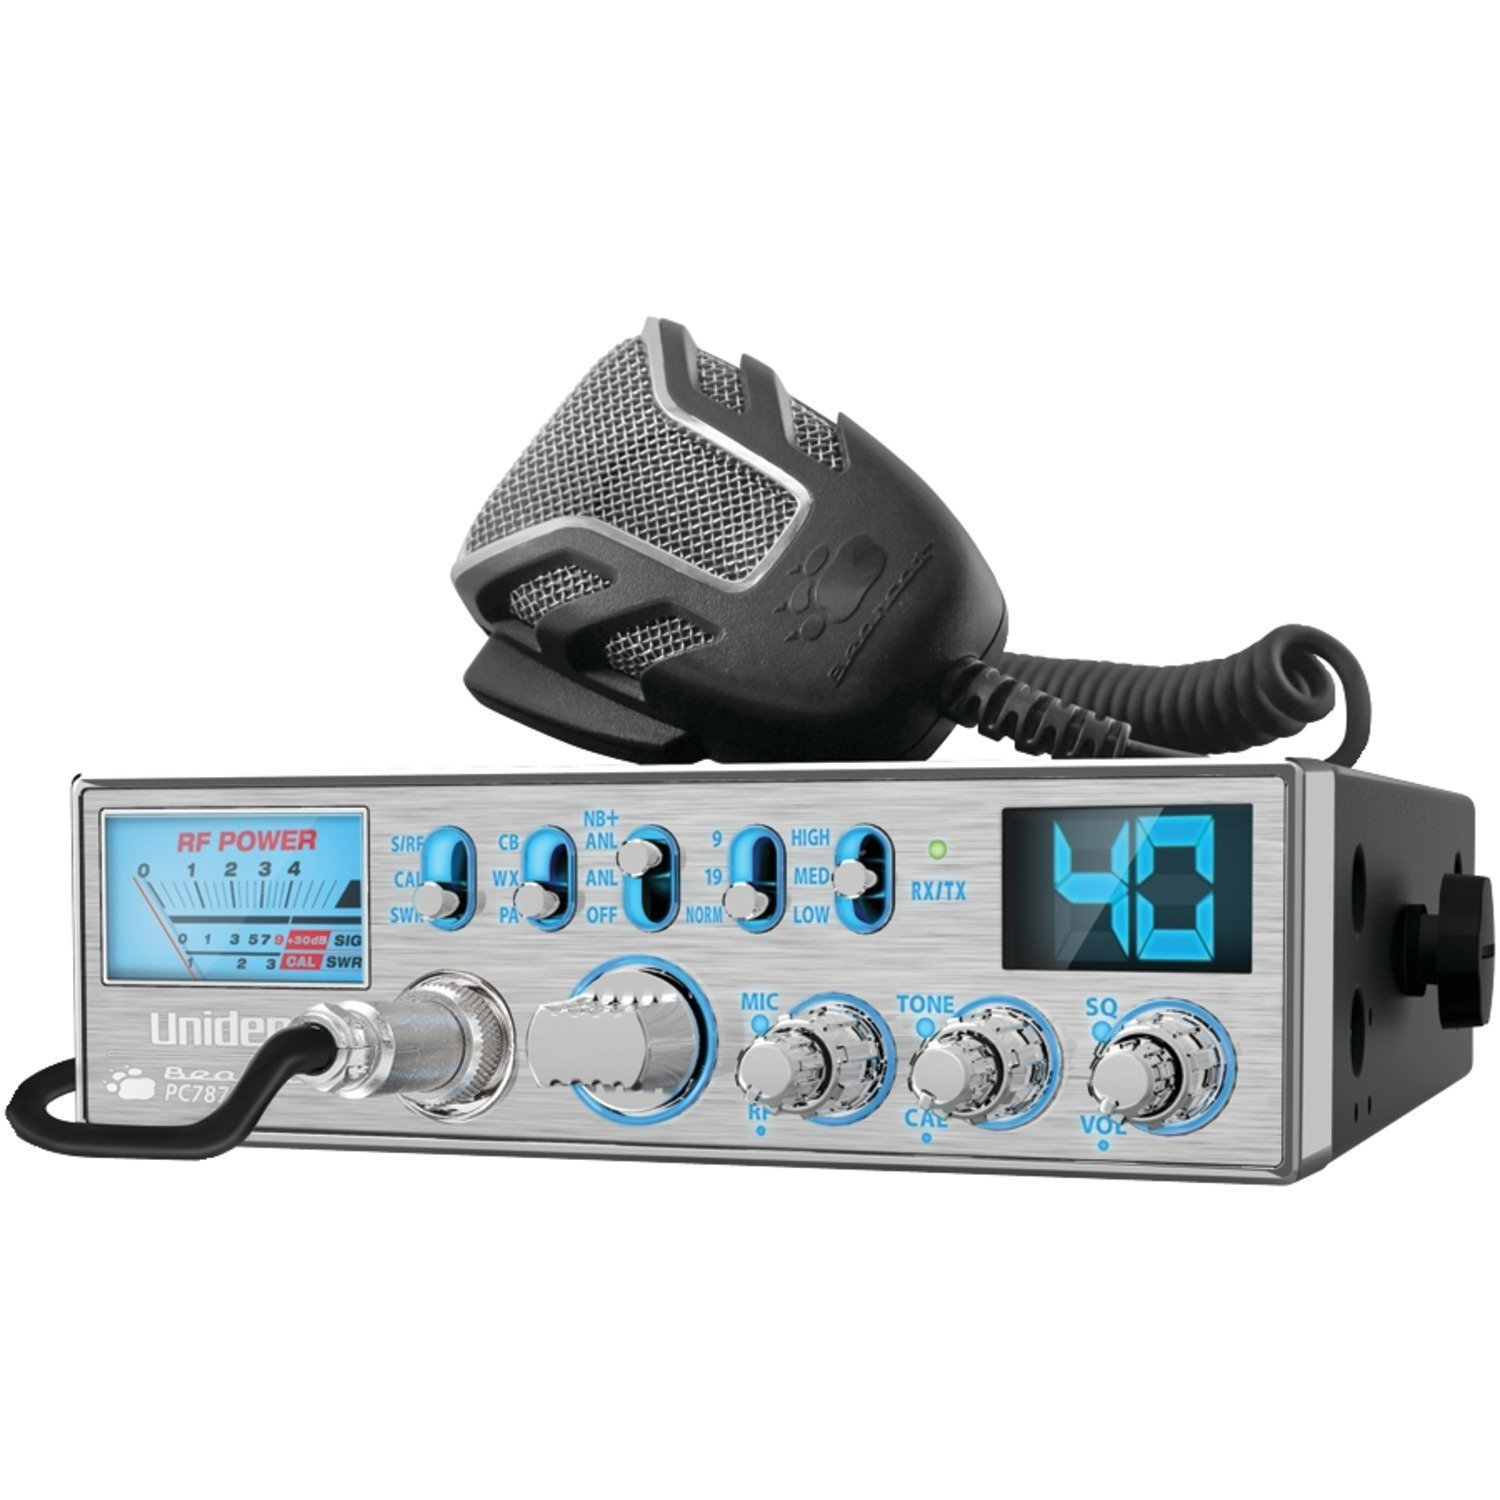 Uniden PC787 Bearcat CB Radio (Silver) (Discontinued by Manufacturer)